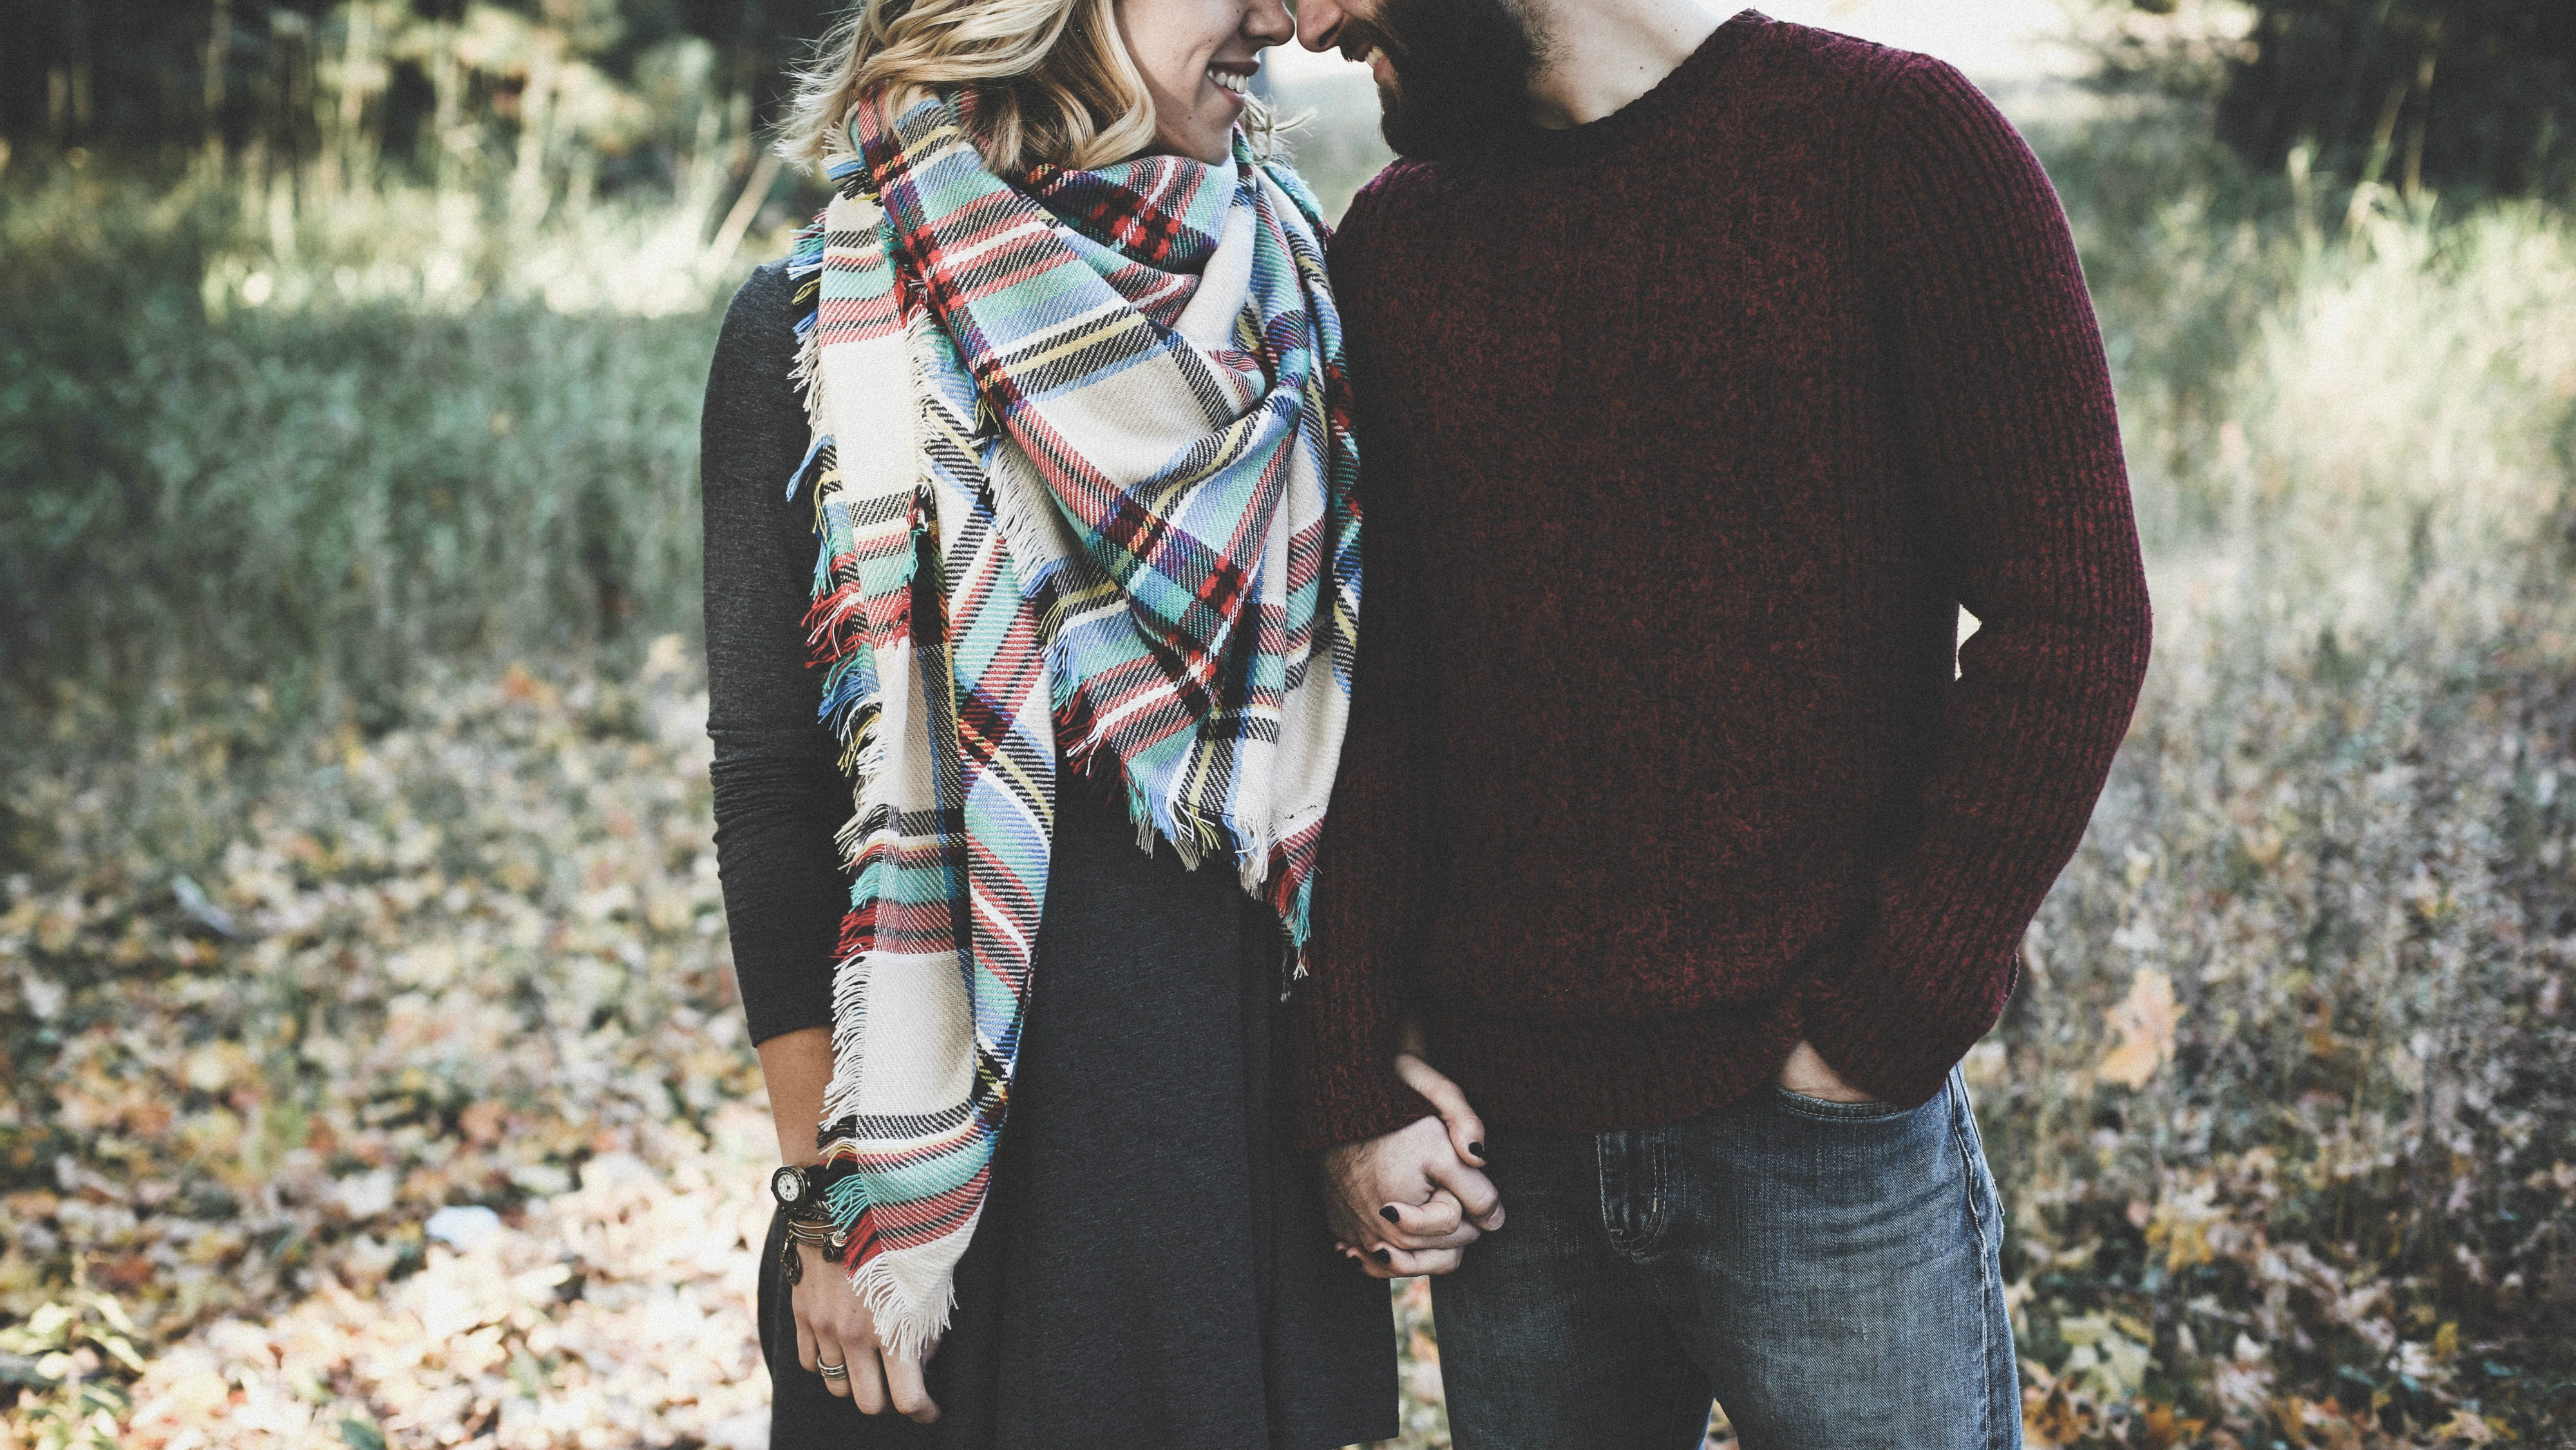 Best christian book for dating couples